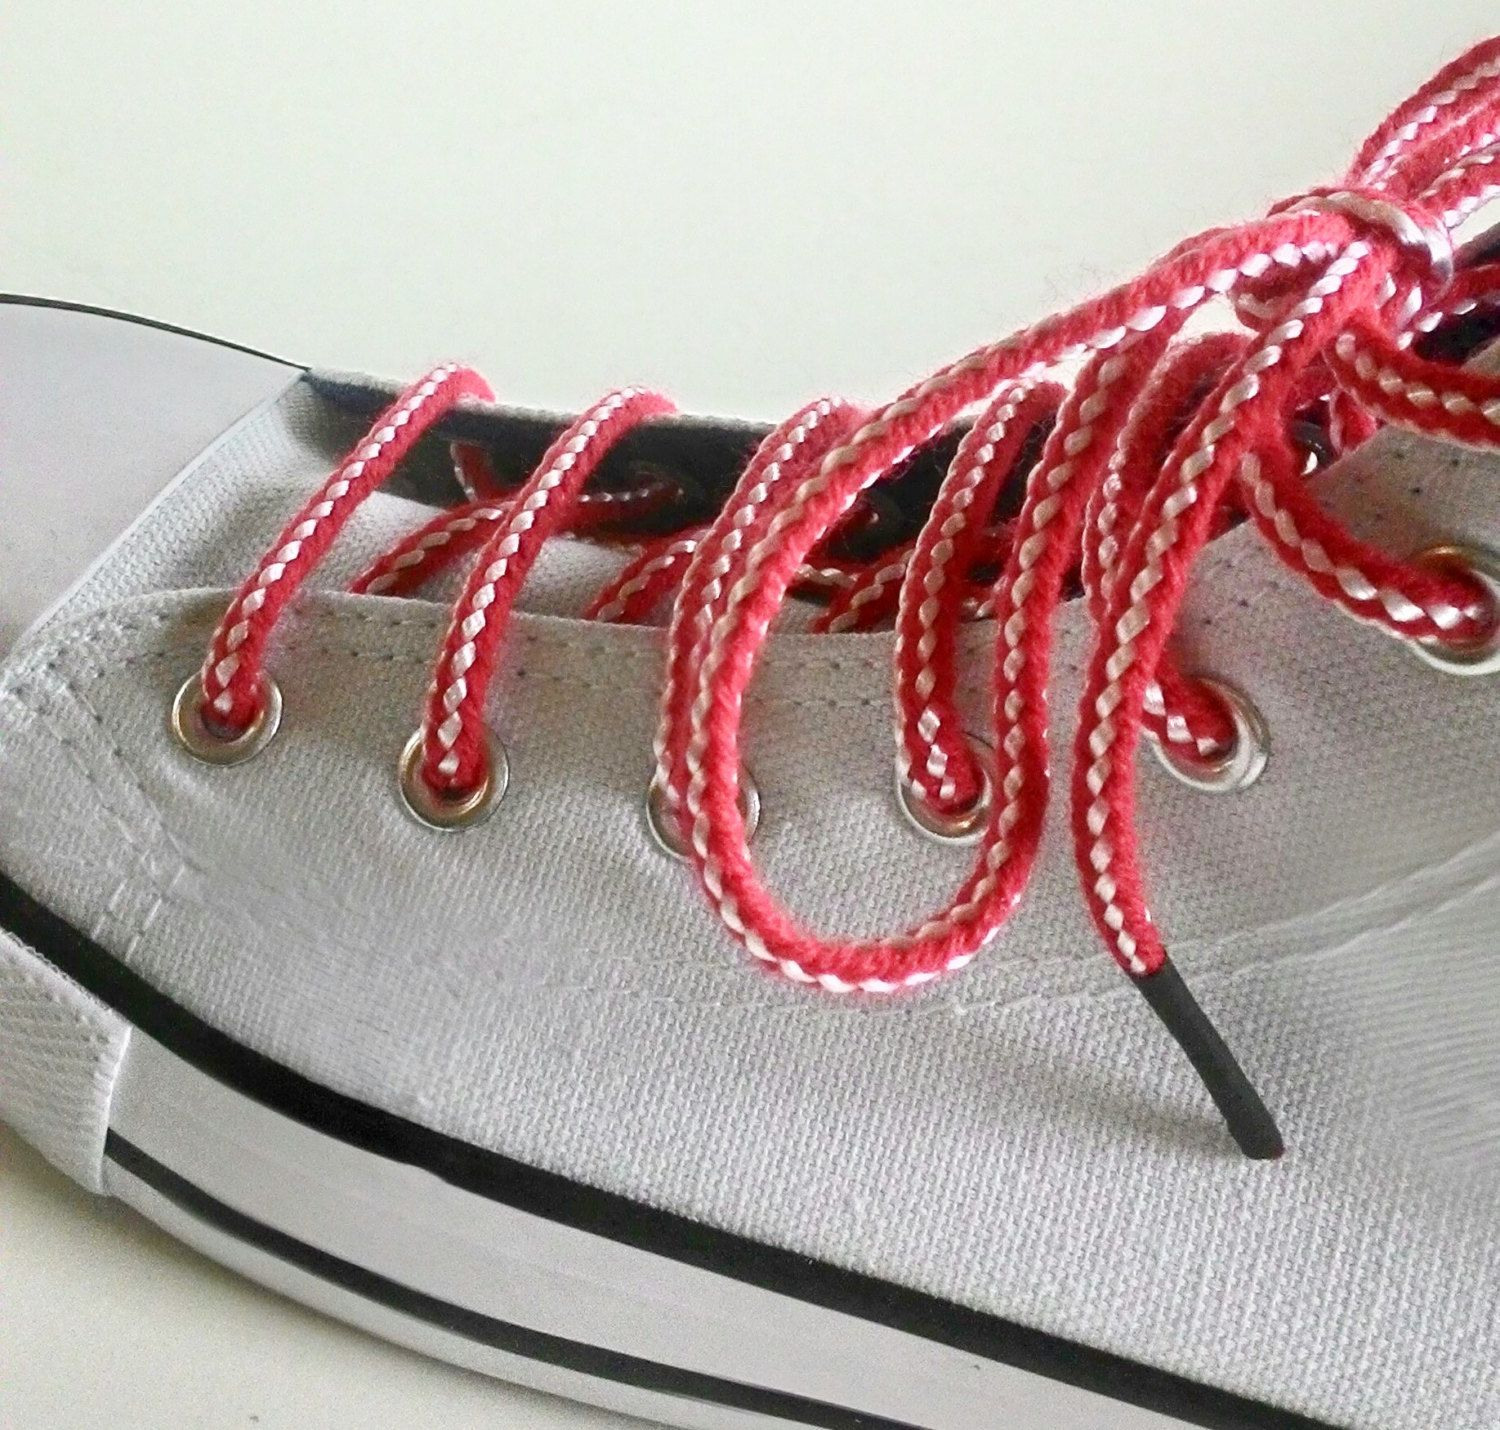 Yarn shoe laces, Red White shoelace, Traditional Bulgarian Martenitsa shoe  lace for Converese, Nike, Vans Low top / Hi top sneakers 59 inch by on Etsy